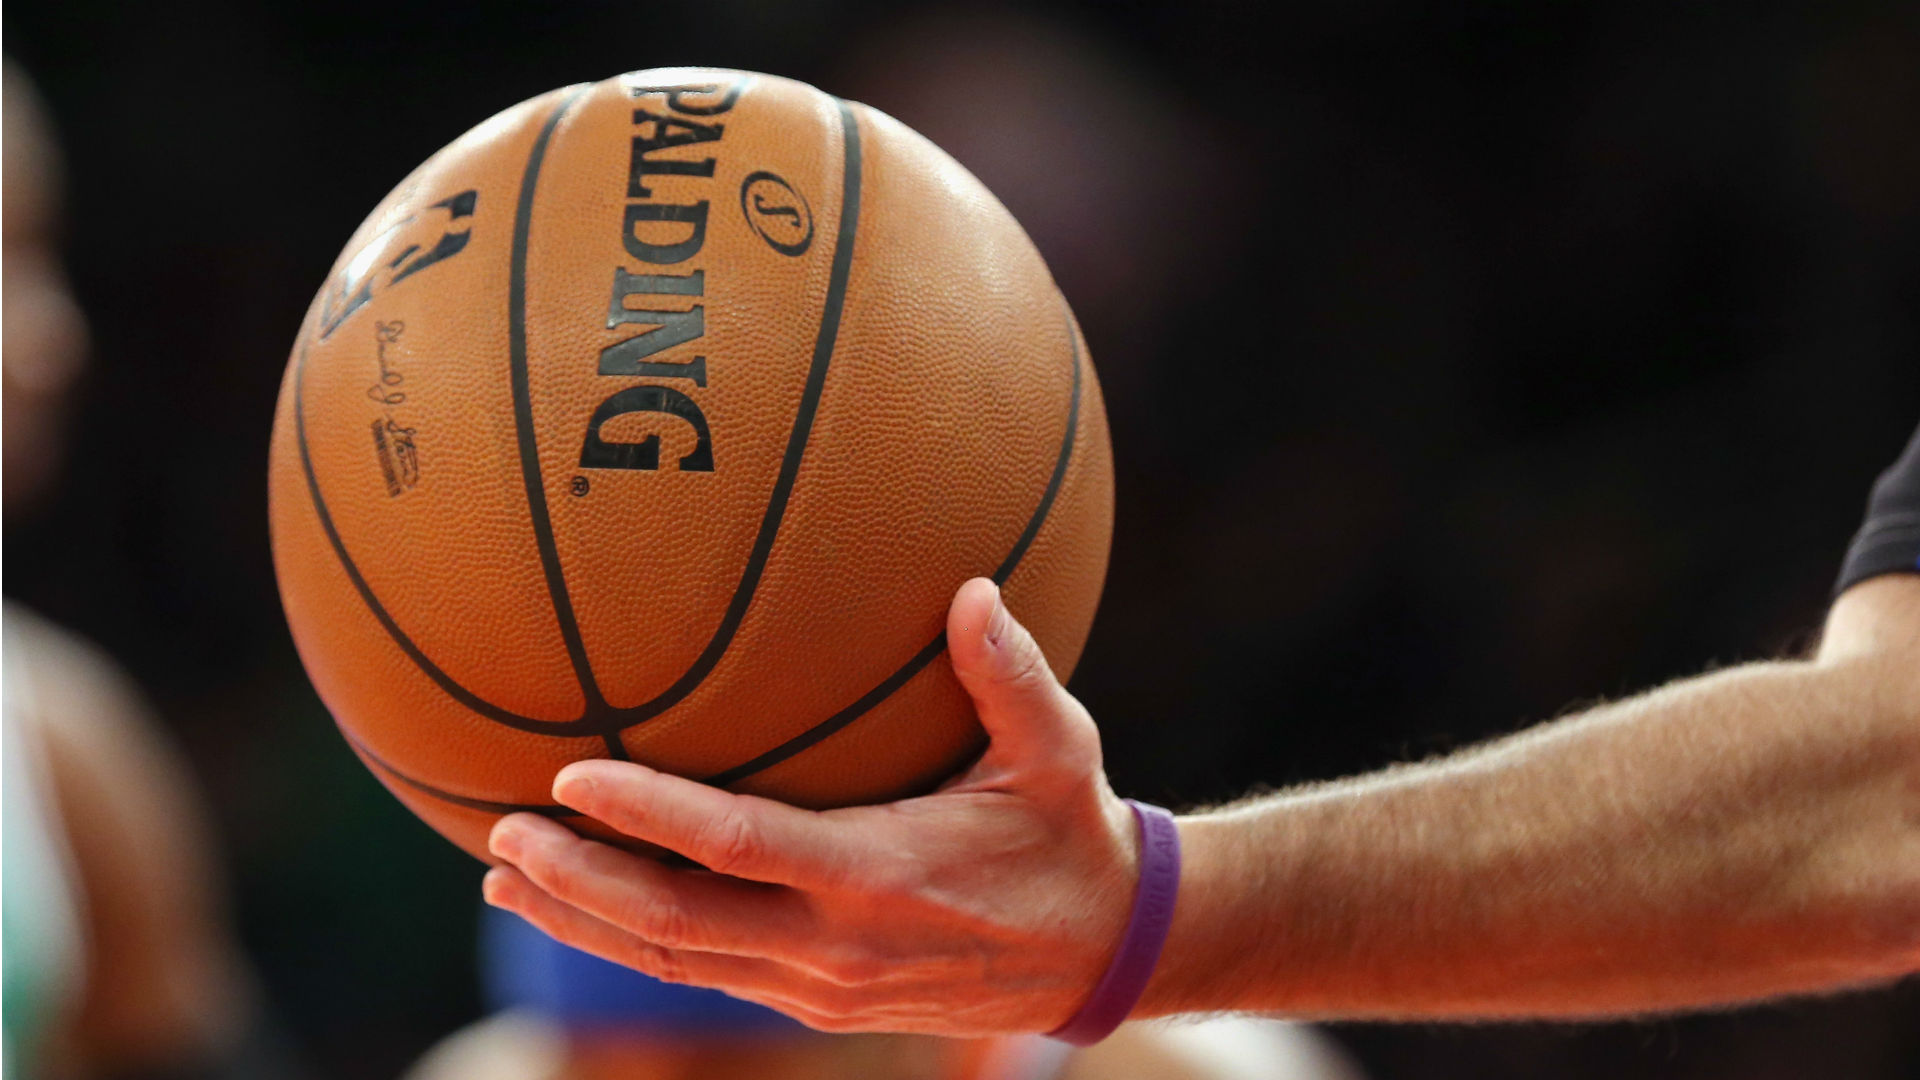 NBA defining 'gather' in rulebook to limit 'uncertainty' about traveling violations